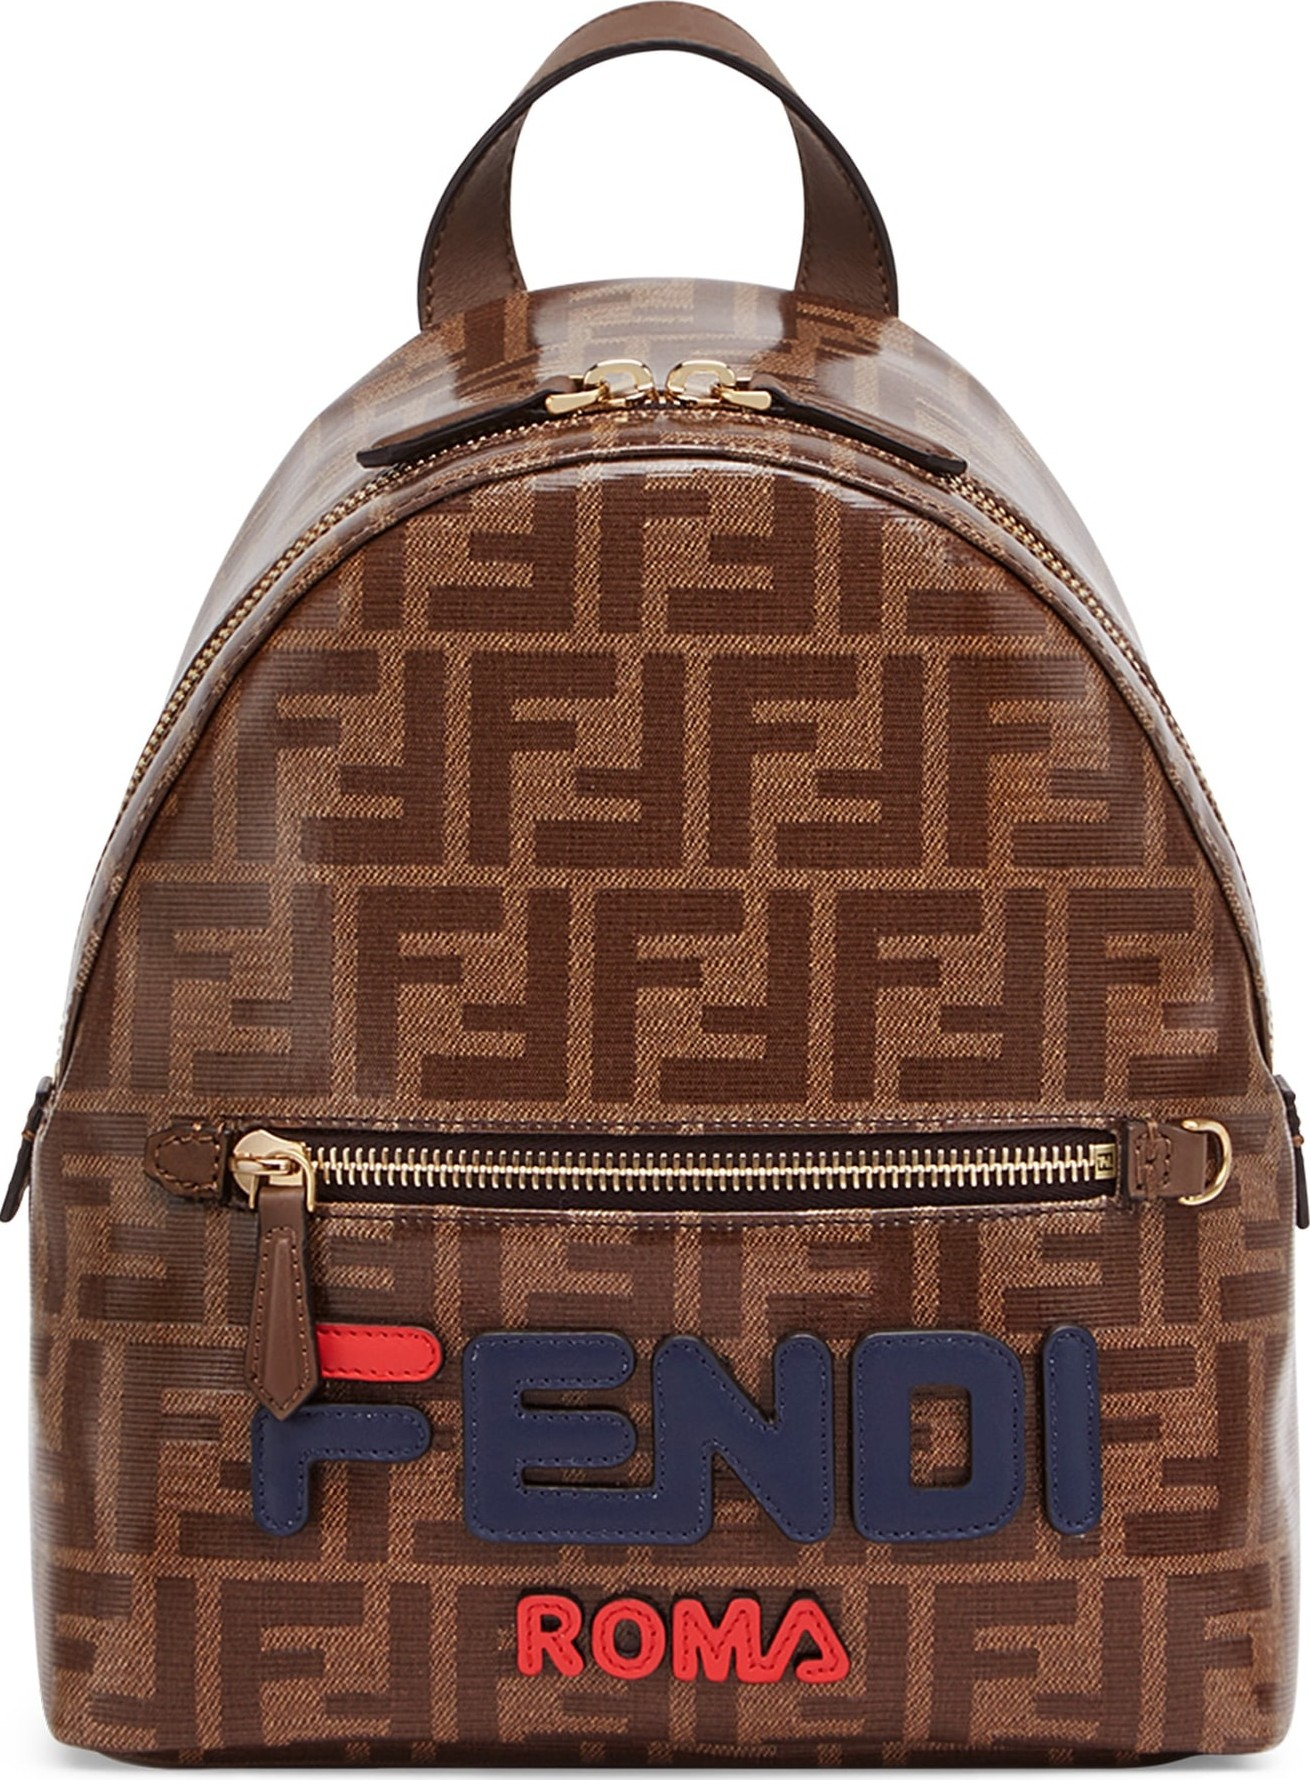 0849cea324 Fendi x FILA Large Mania Logo Backpack - Mkt